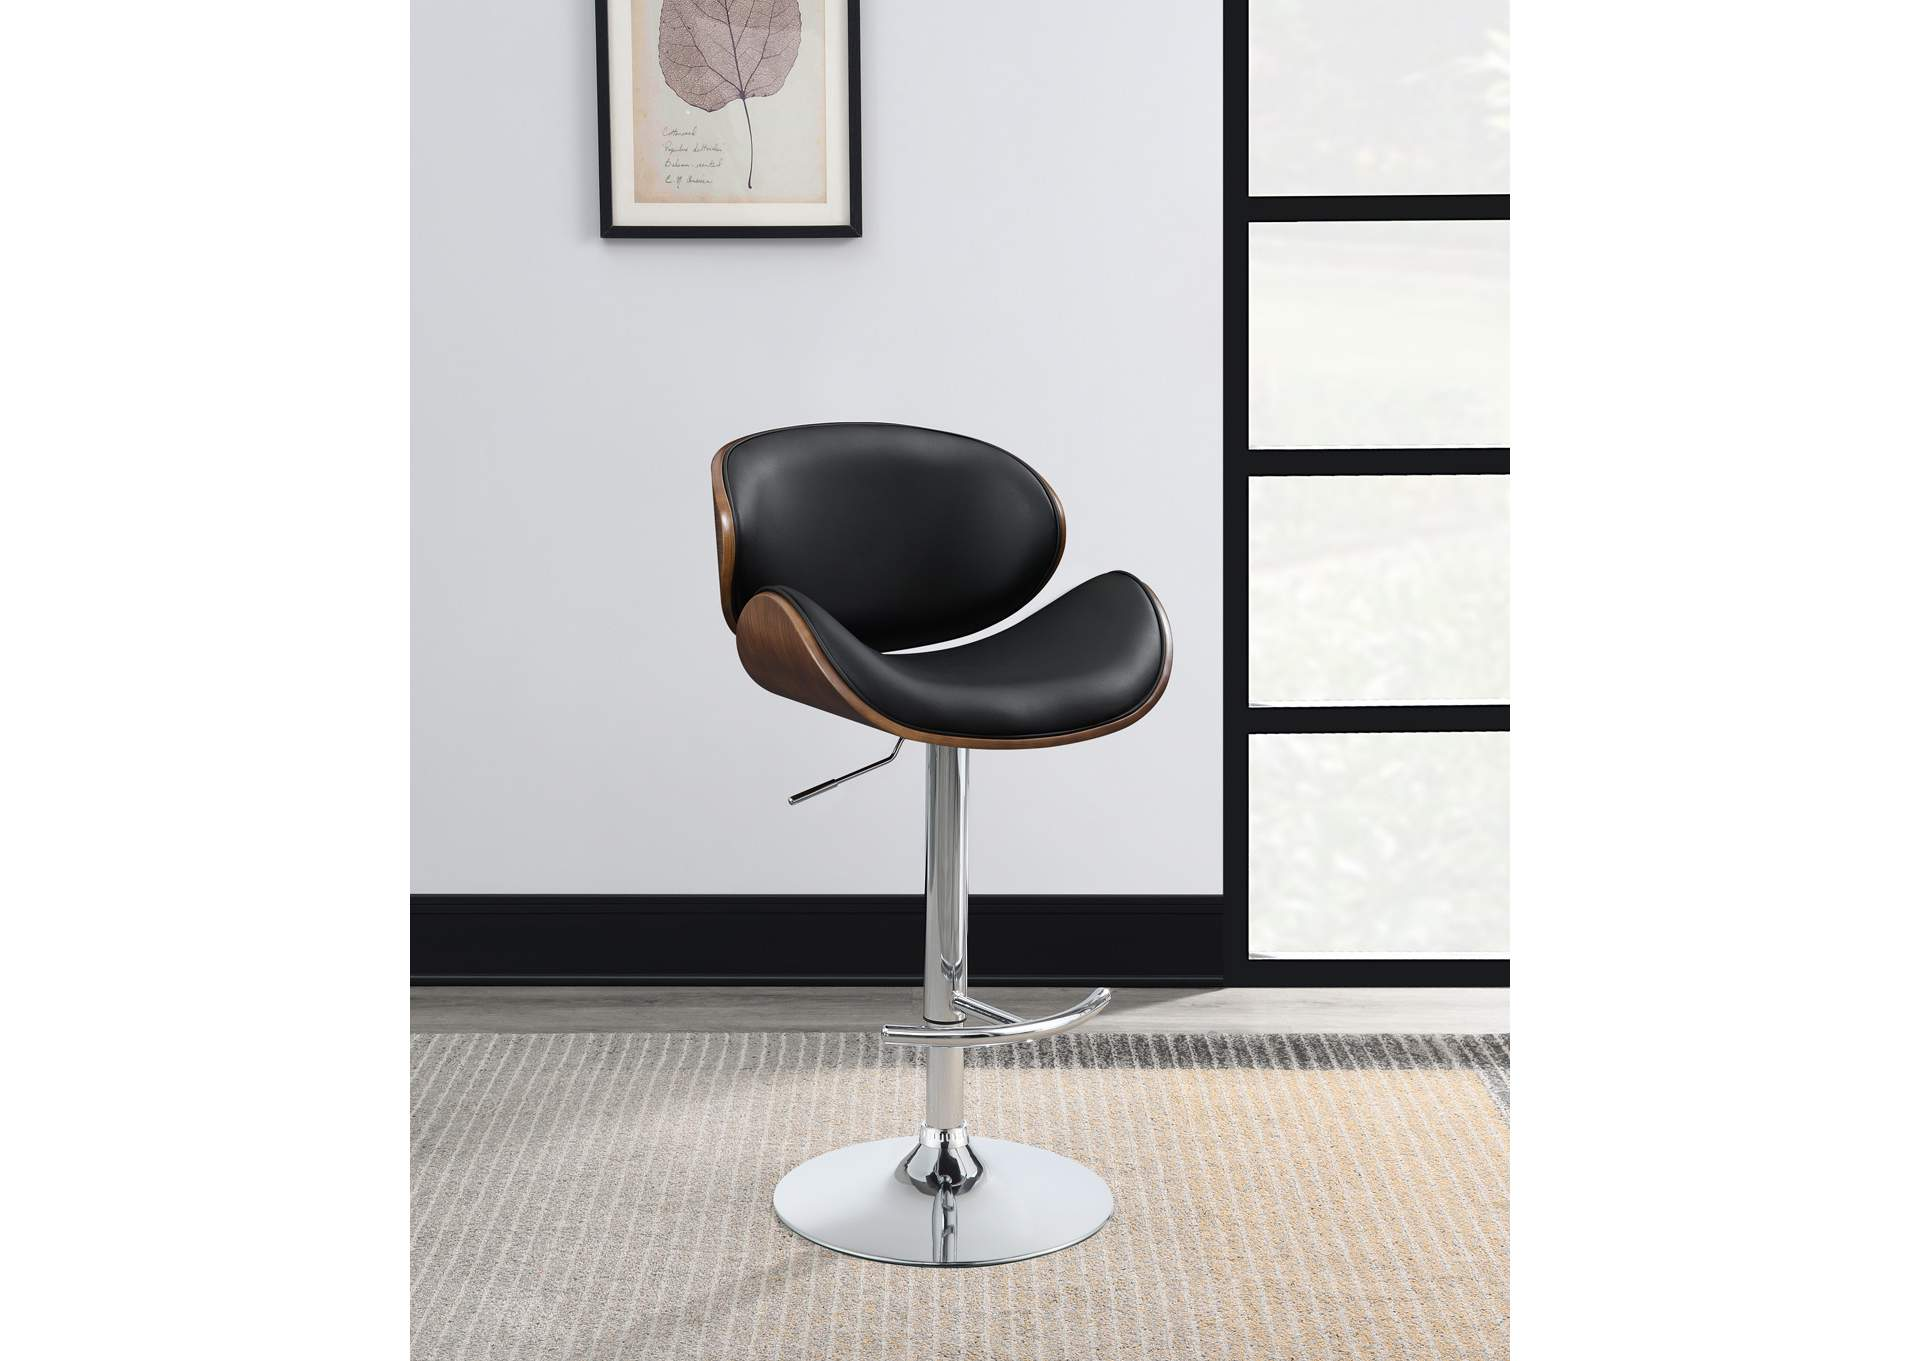 Davis home furniture asheville nc black bar stool Davis home furniture asheville hours